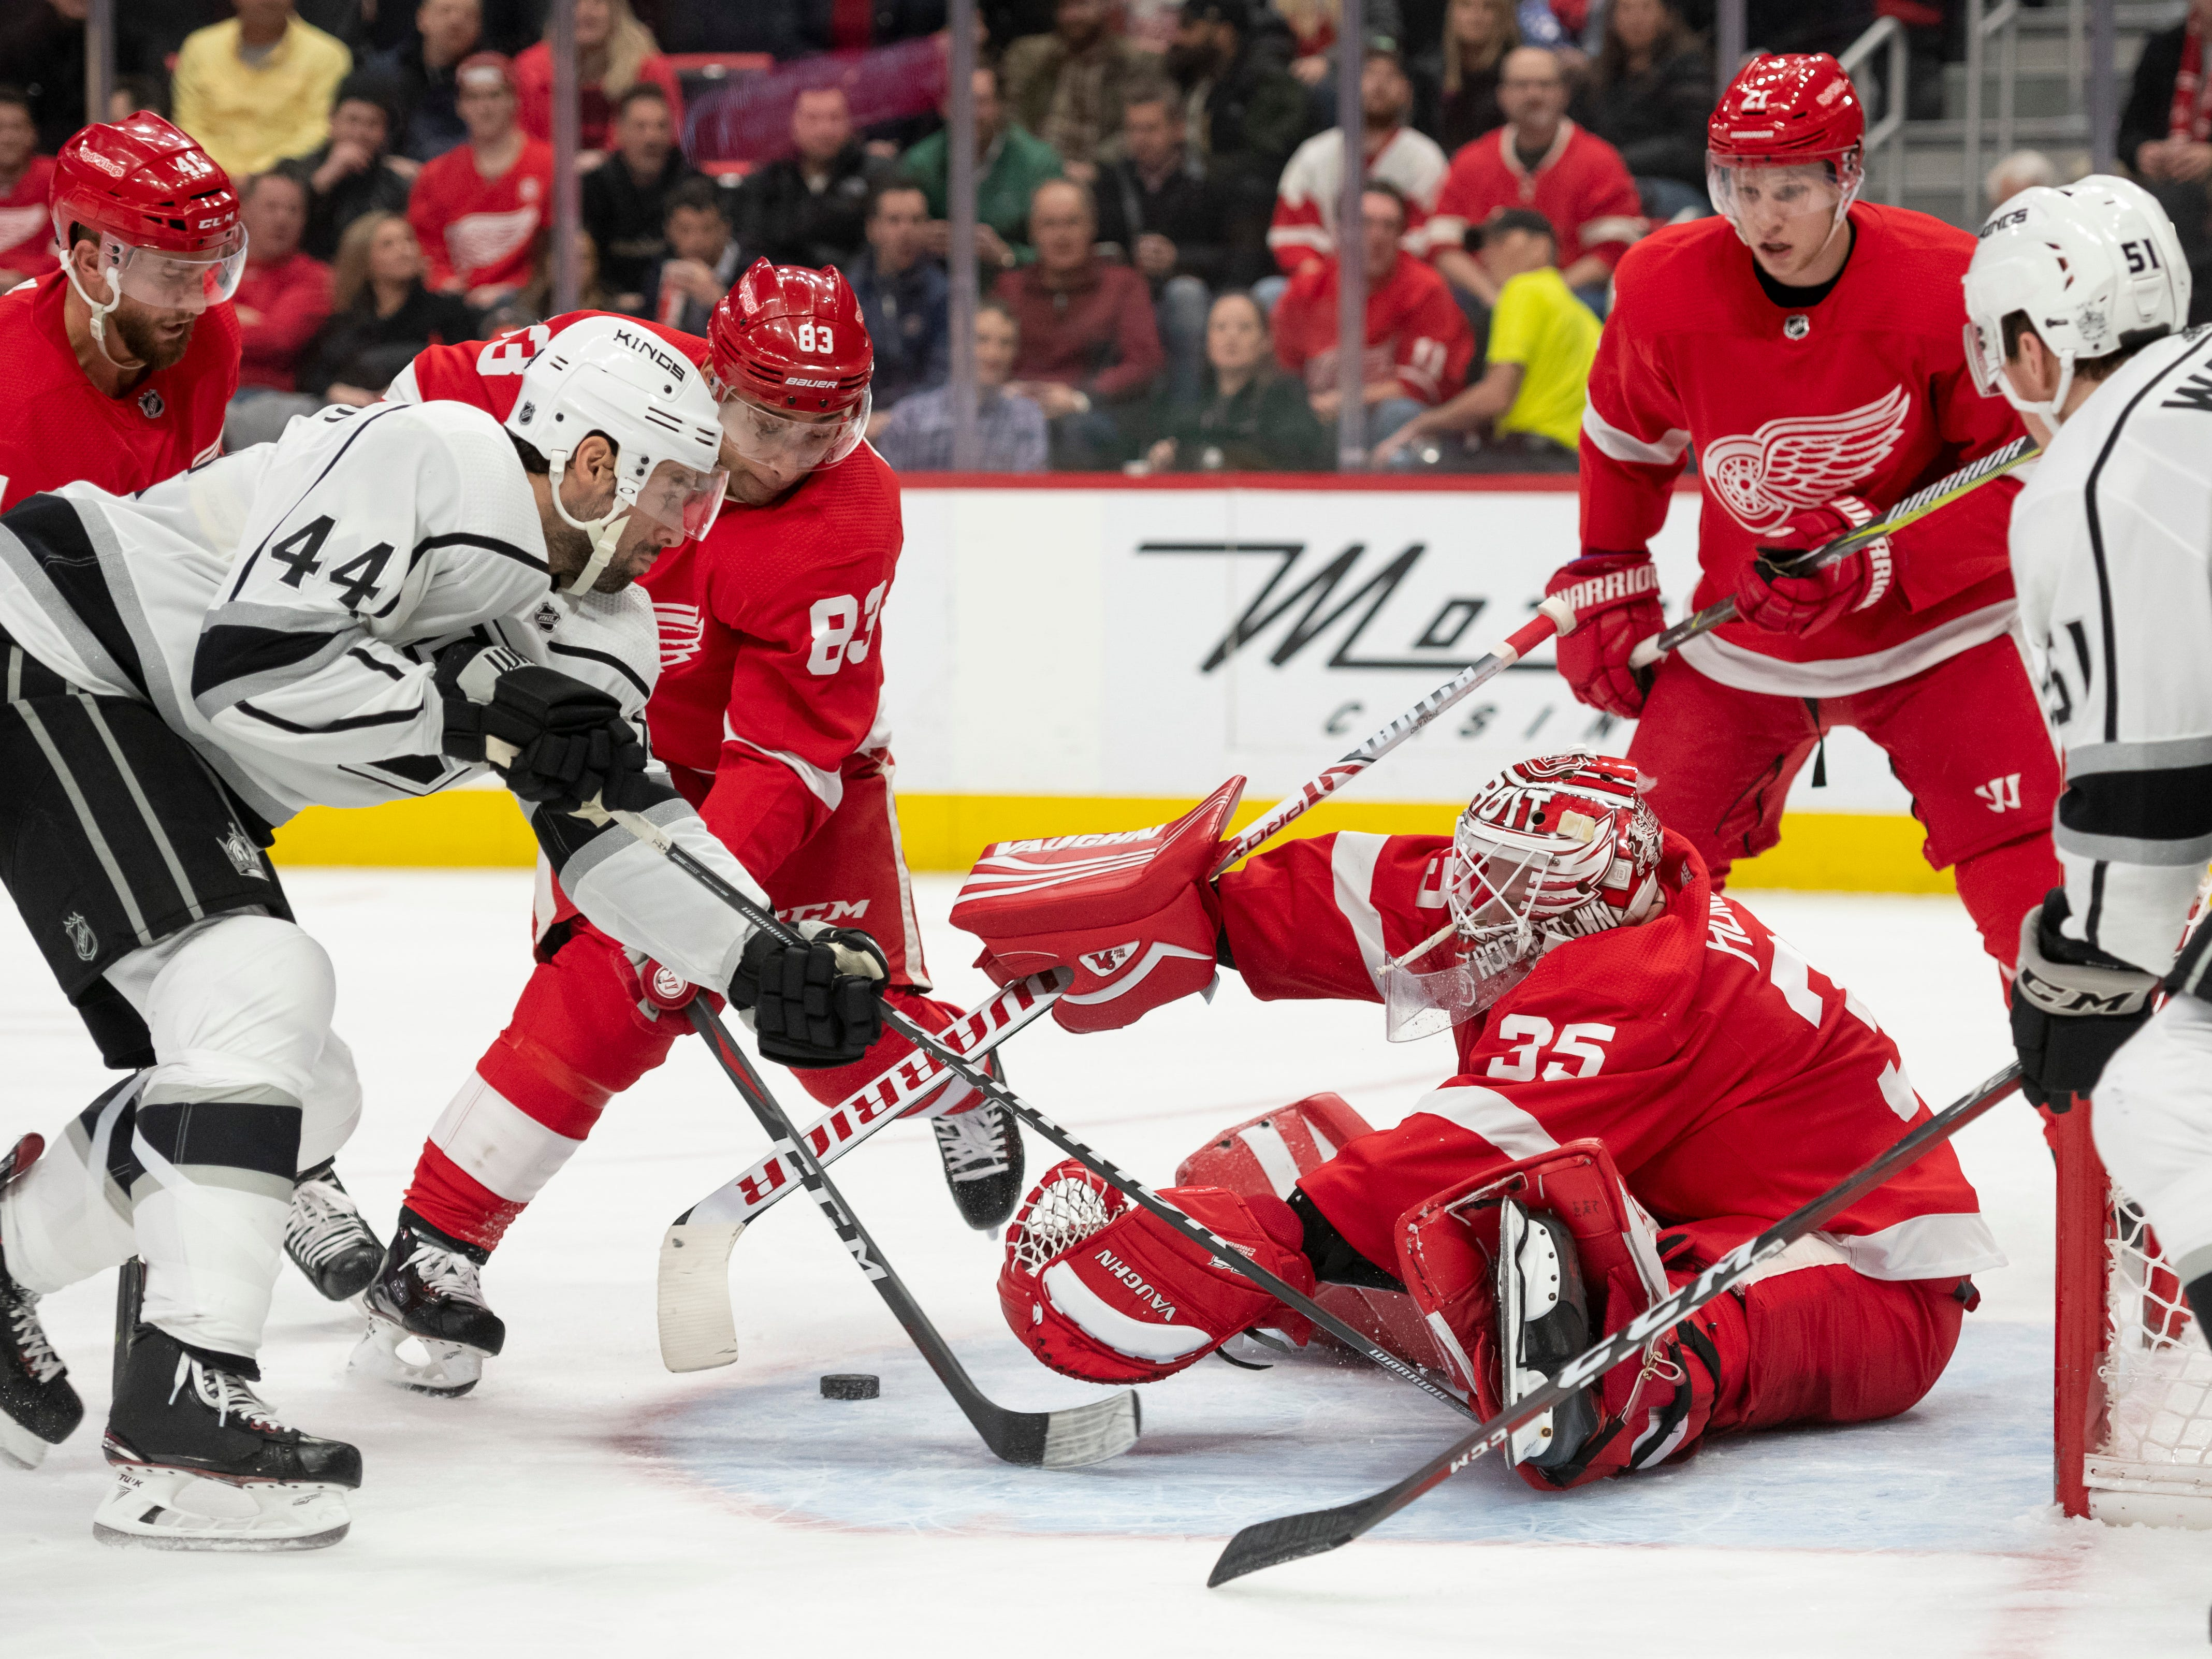 Los Angeles center Nate Thompson can't get the puck past Detroit goaltender Jimmy Howard in the second period.